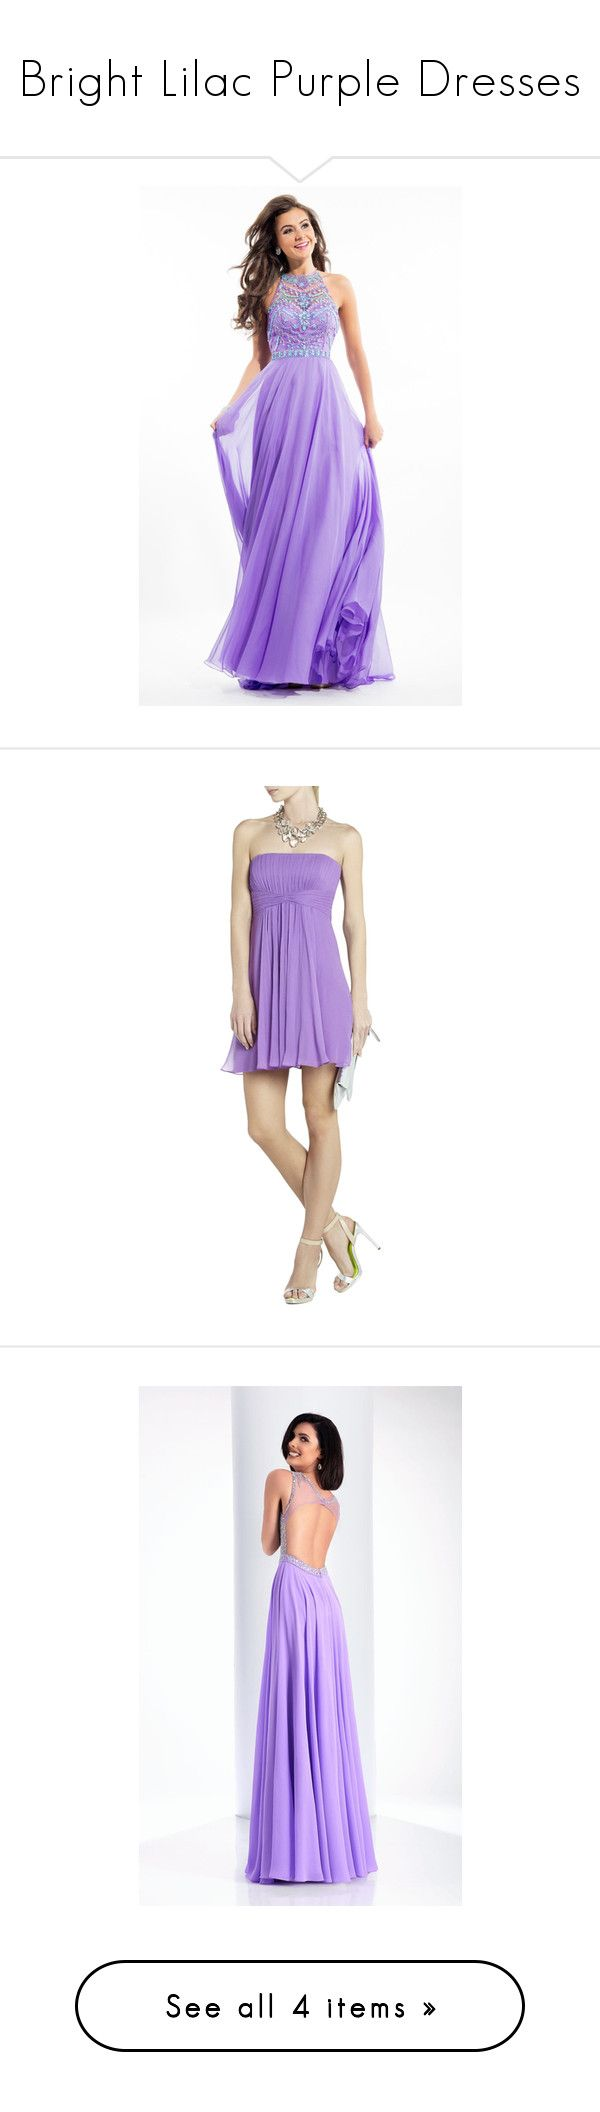 """""""Bright Lilac Purple Dresses"""" by tegan-b-riley on Polyvore featuring dresses, gowns, prom, purple, formal dresses, lilac, long purple dress, formal evening dresses, purple formal gowns and long evening gowns"""